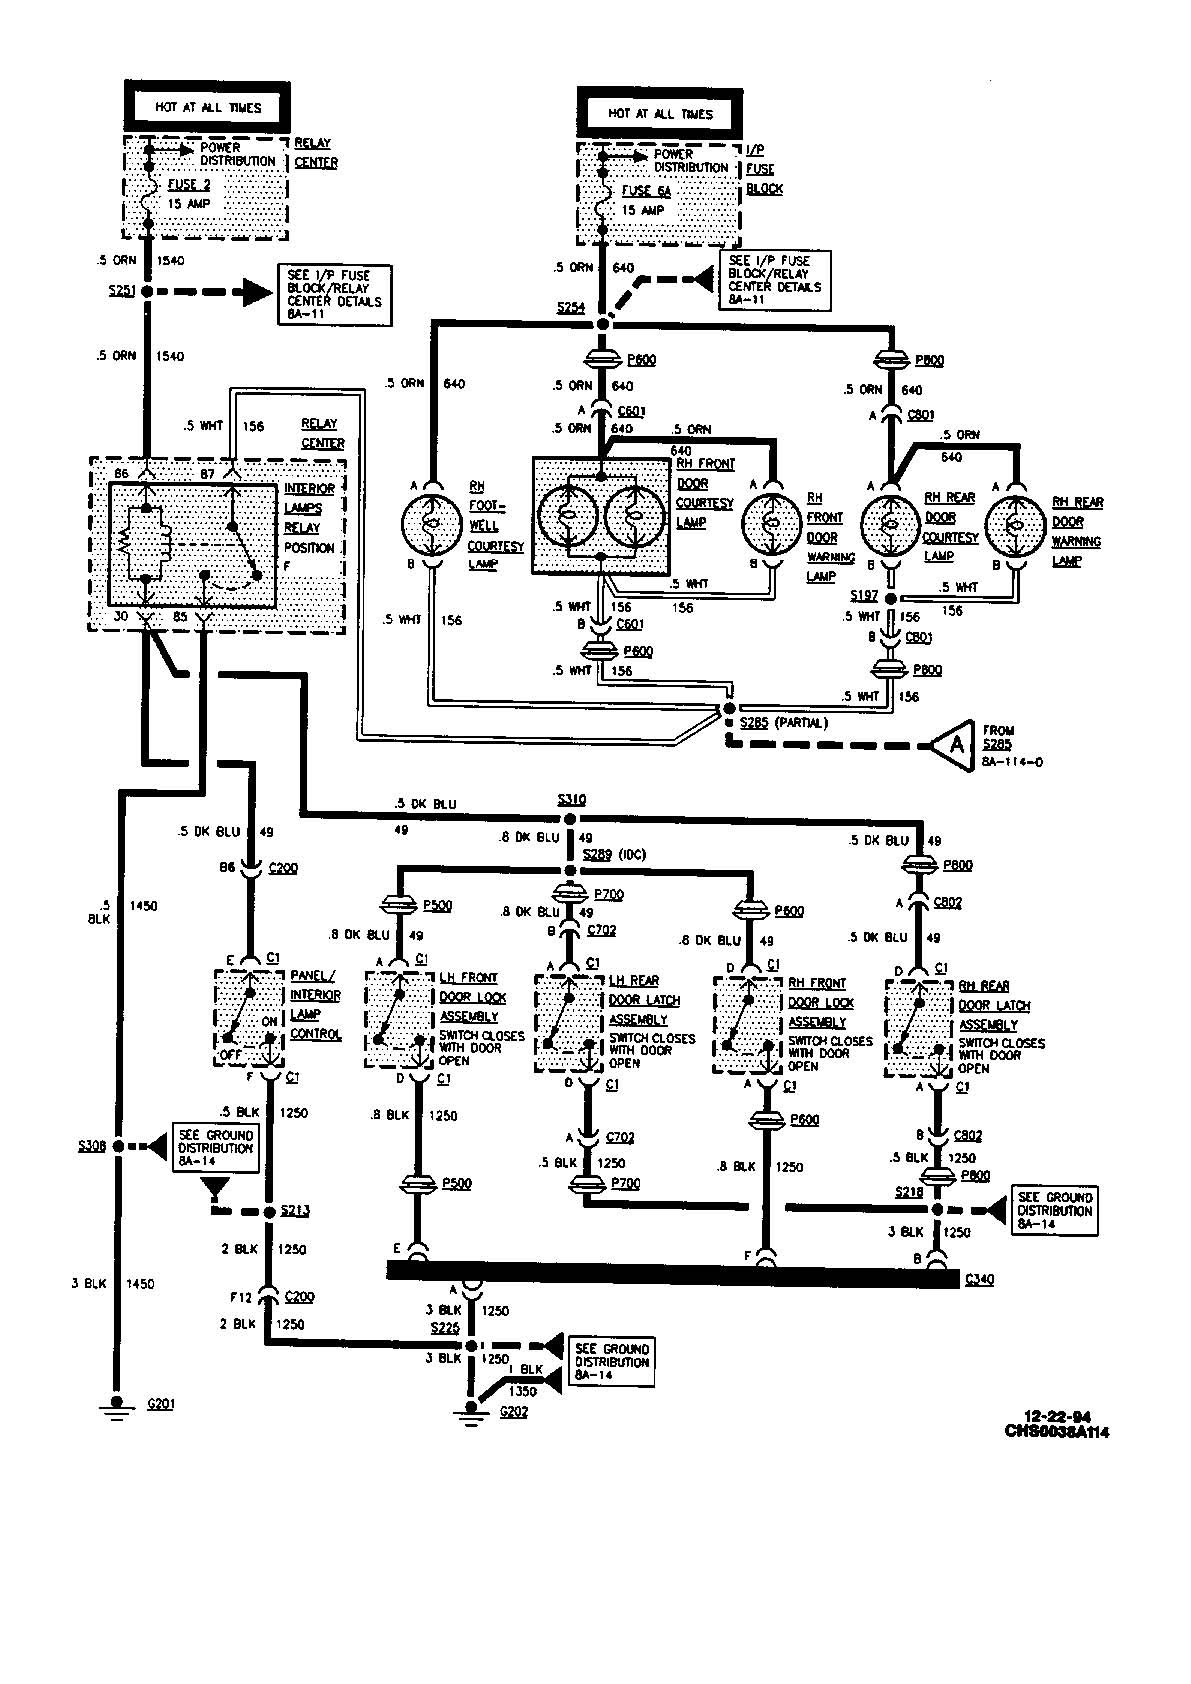 gm 3800 v6 wiring diagram wiring diagram portal u2022 rh getcircuitdiagram  today 3800 Series 2 Engine Diagram 1995 Buick Park Avenue 3800 Engine  Diagram